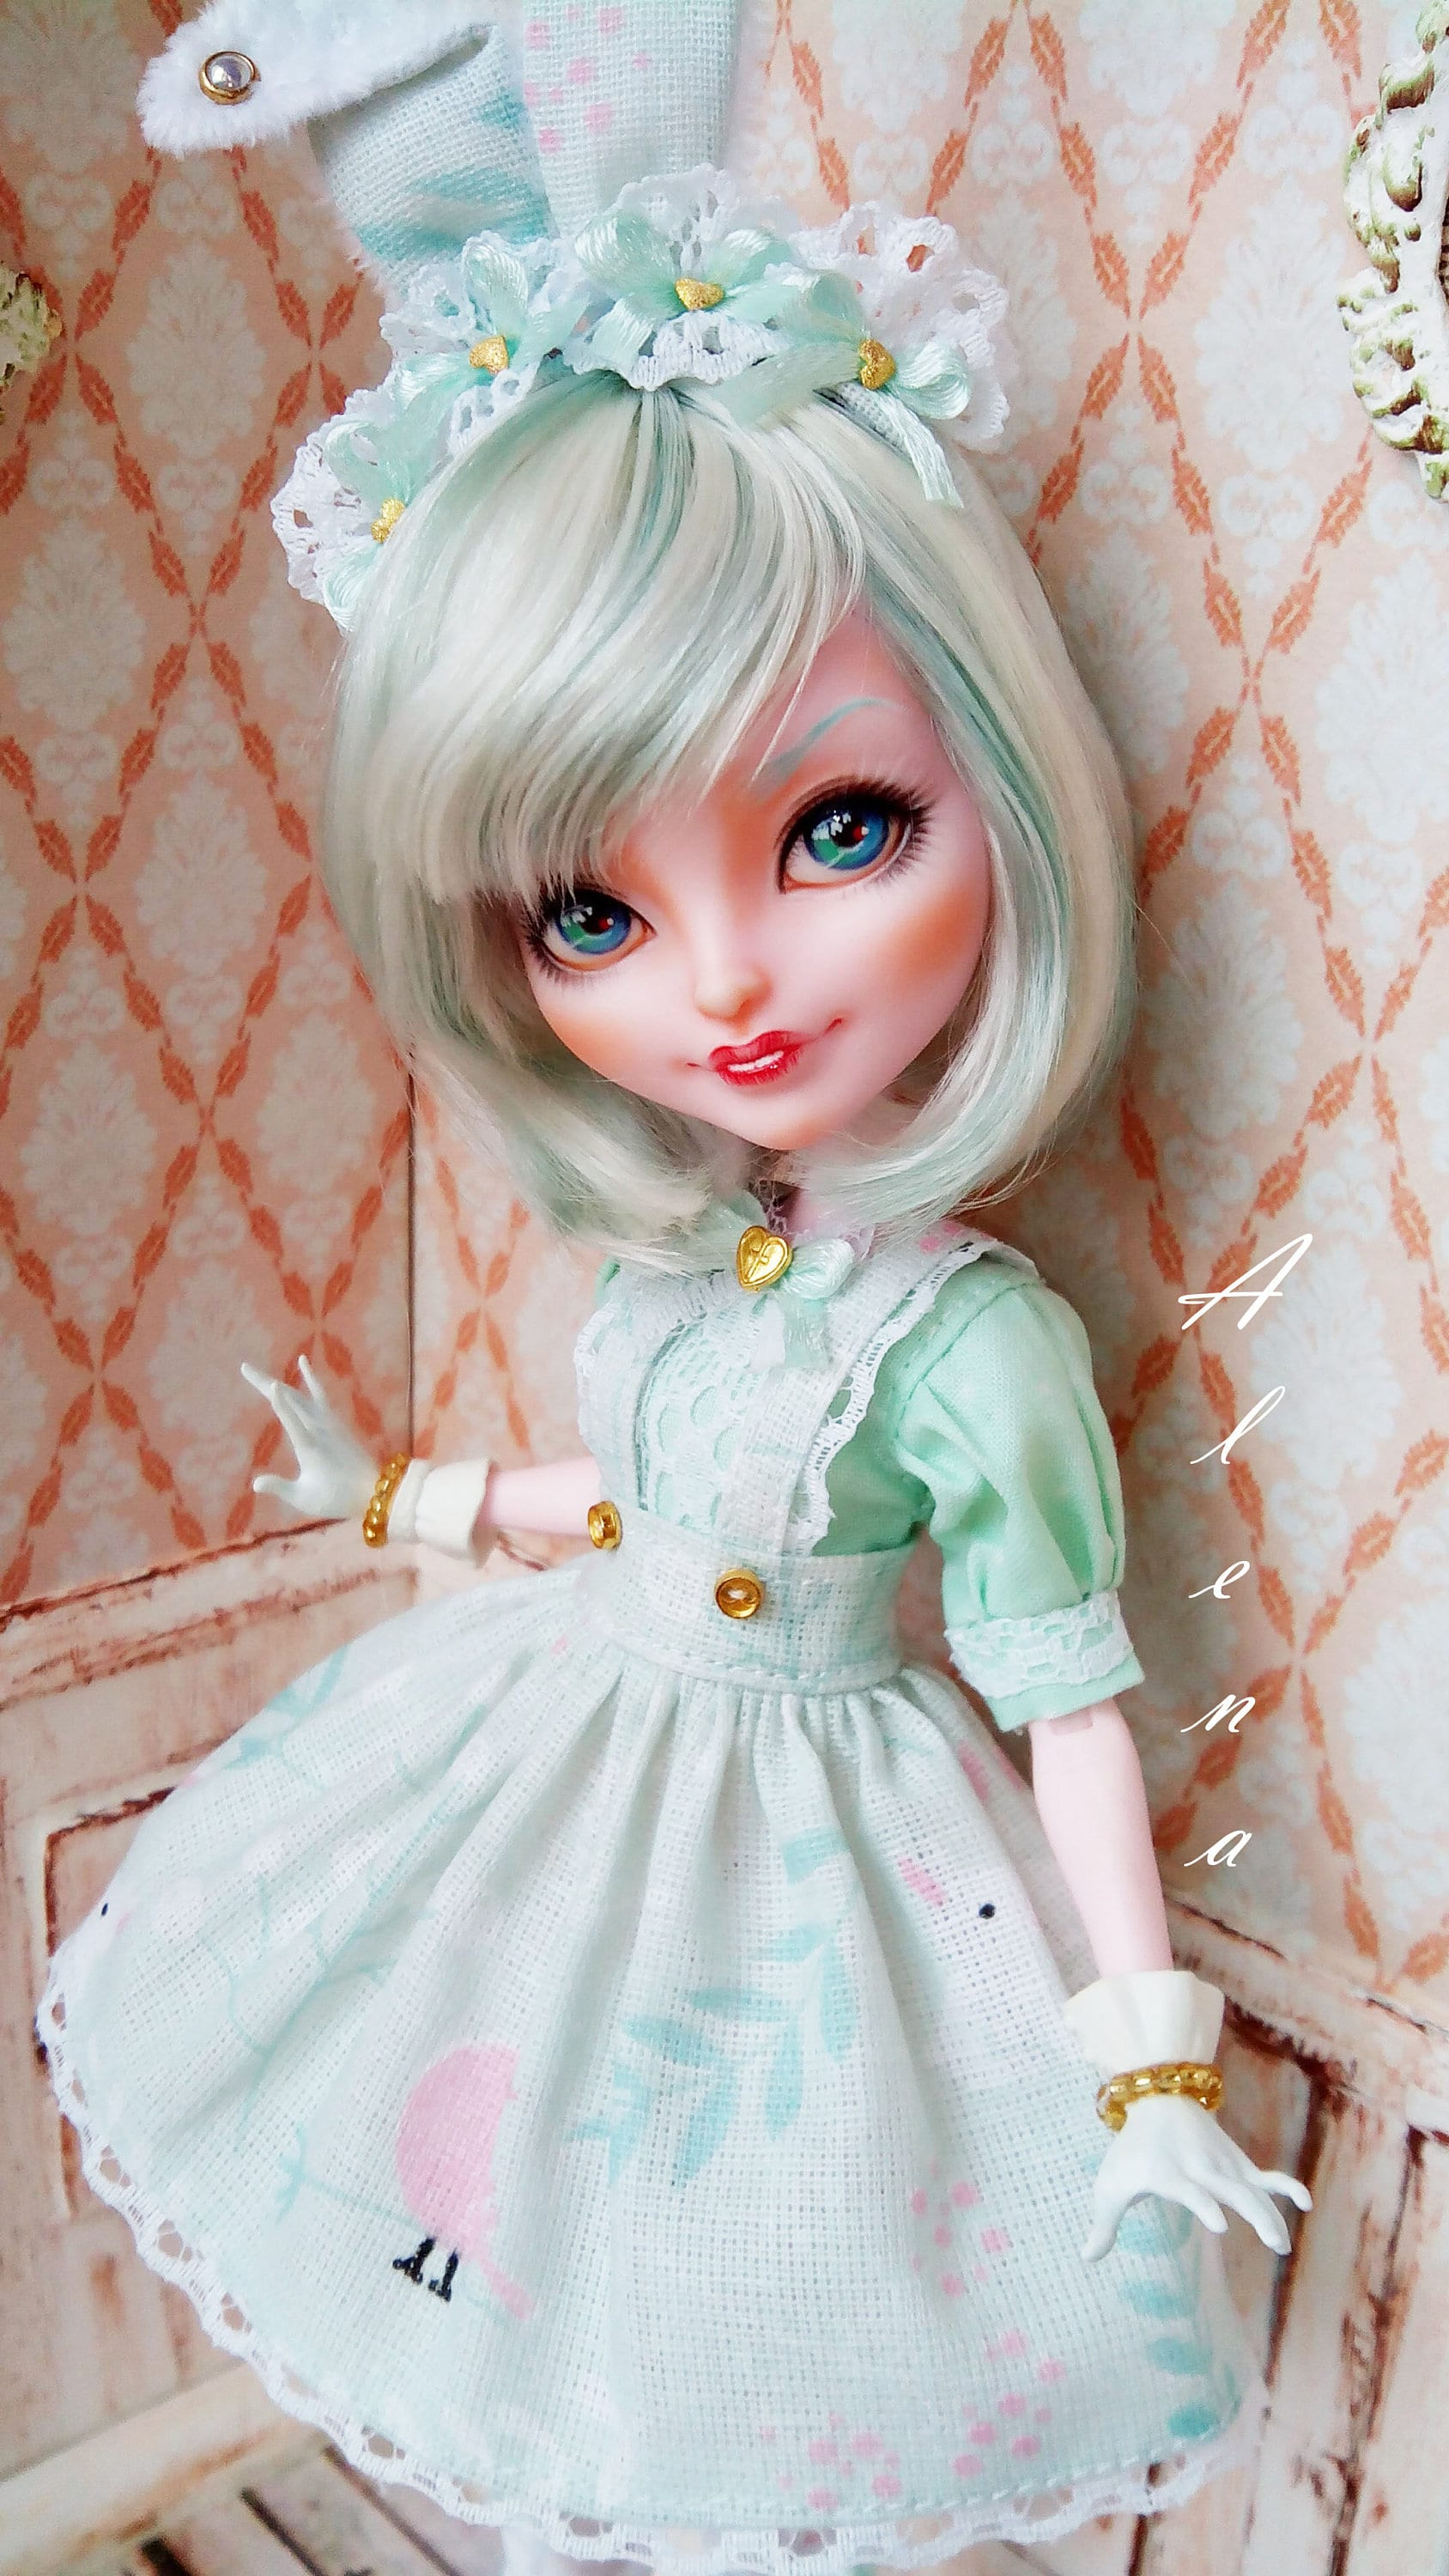 OOAK doll Ever After High Bunny Blanc